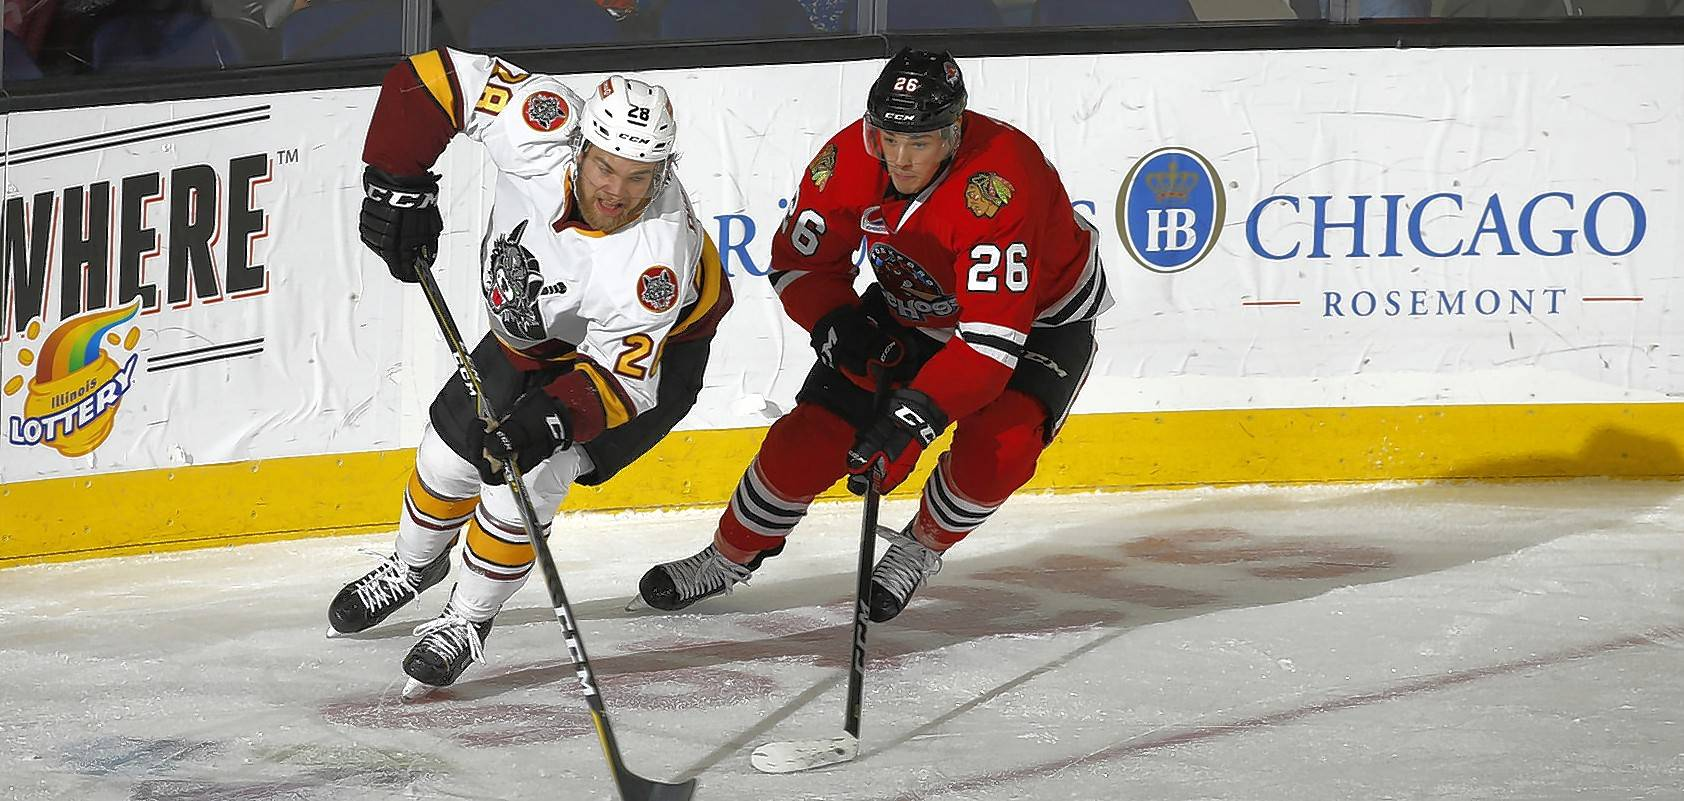 Alexandre Fortin (26), of the Rockford IceHogs, was the star of camp last season and constantly showcases his high-end speed but is still figuring out how to finish. He has 3 goals in 30 games.